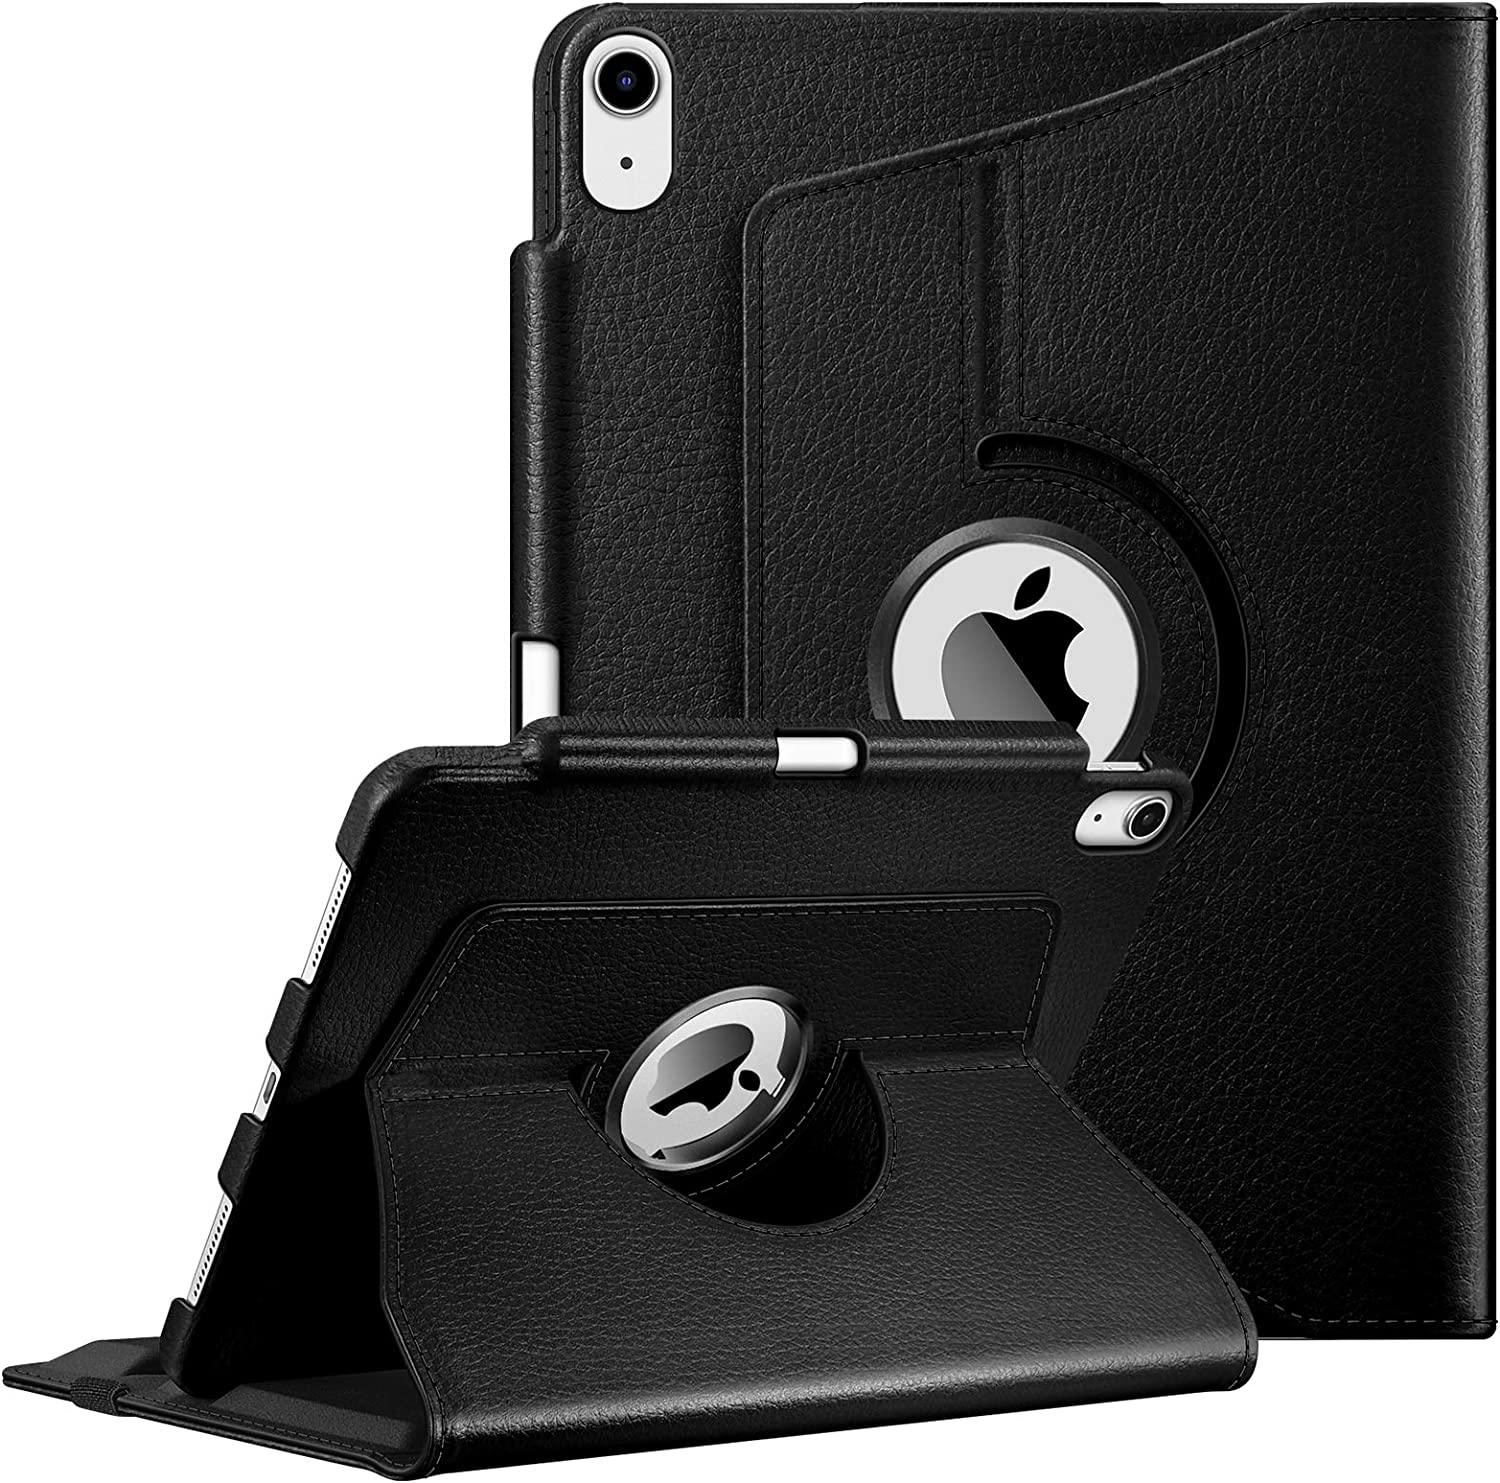 Fintie Case for iPad Air 4 10.9 Inch 2020 with Pencil Holder [Support 2nd Gen Pencil Charging] - 360 Degree Rotating Stand Cover with Auto Sleep/Wake for iPad Air 4th Generation, Black